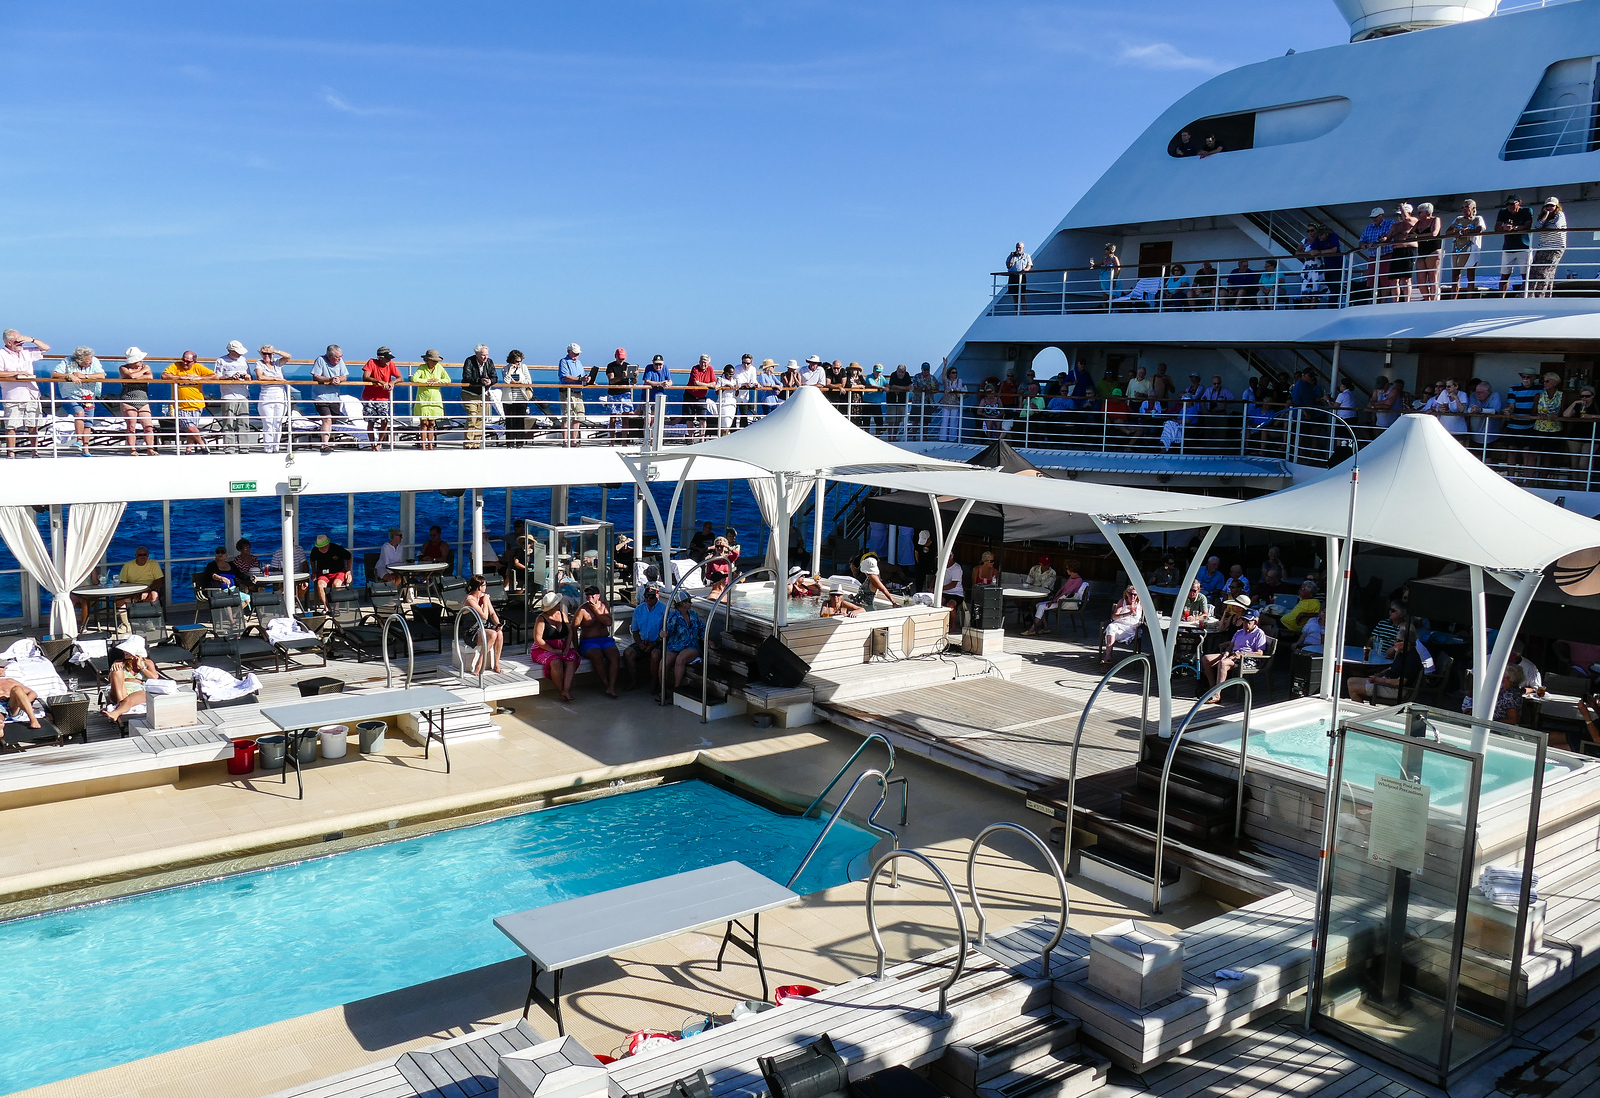 Passengers line the deck of Seabourn Sojourn to watch the Crossing the Equator ceremony.